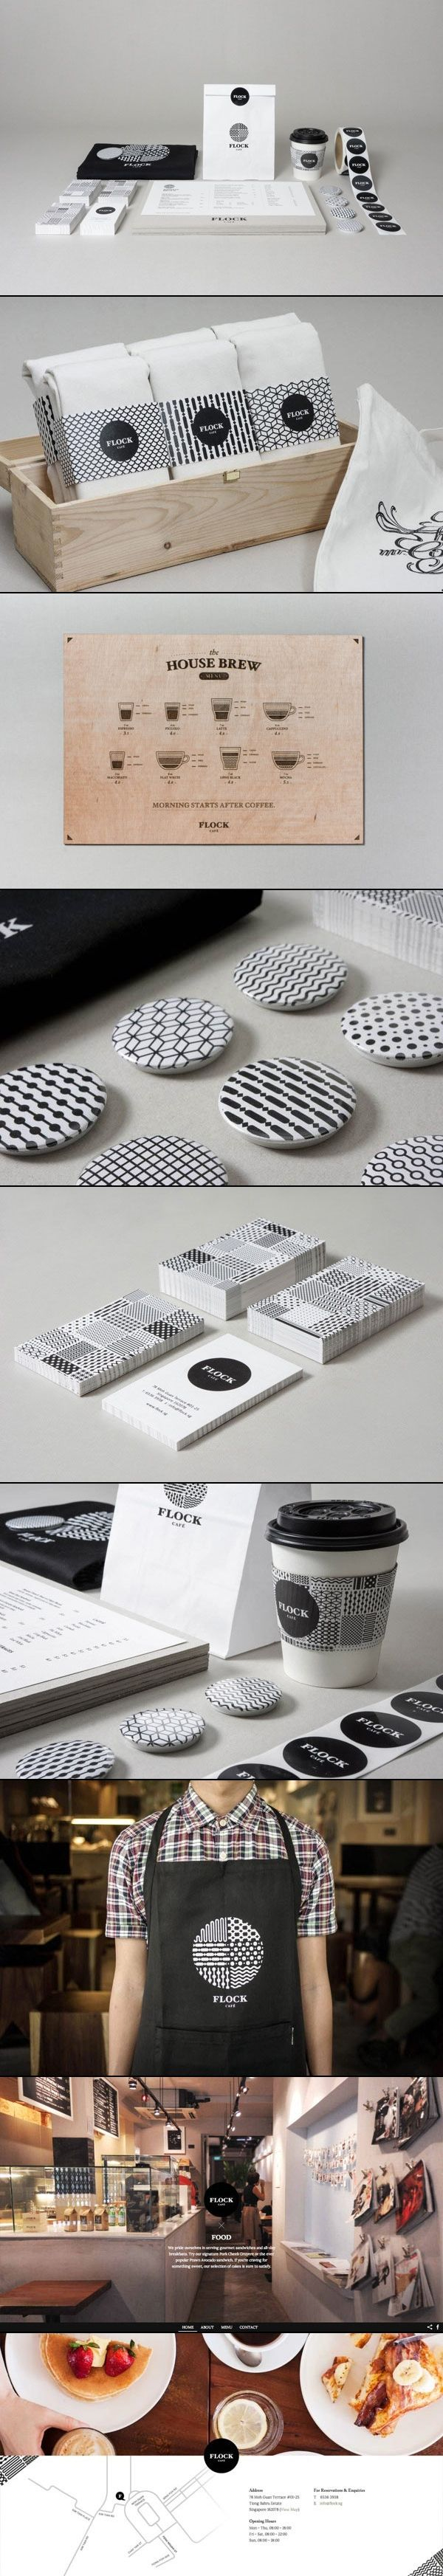 Art Direction and Branding by Kilo Studio for Flock Café #identity #packaging #branding PD